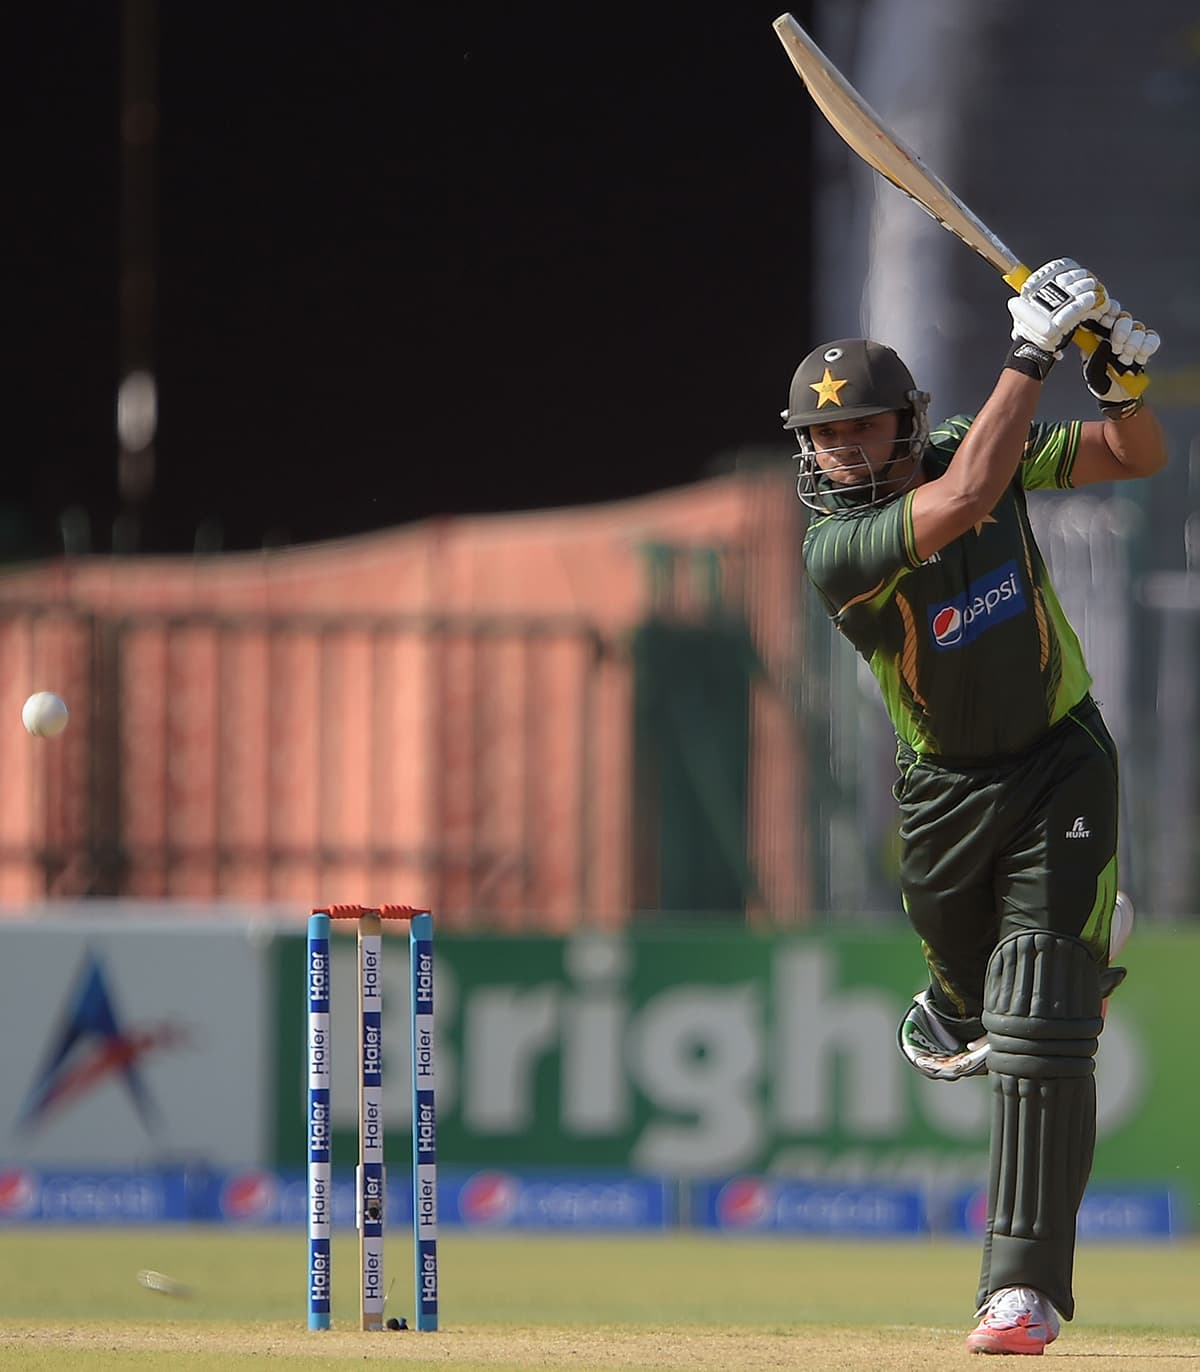 Azhar Ali plays a shot during the first ODI between Pakistan and Zimbabwe at the Gaddafi Stadium in Lahore. — AFP